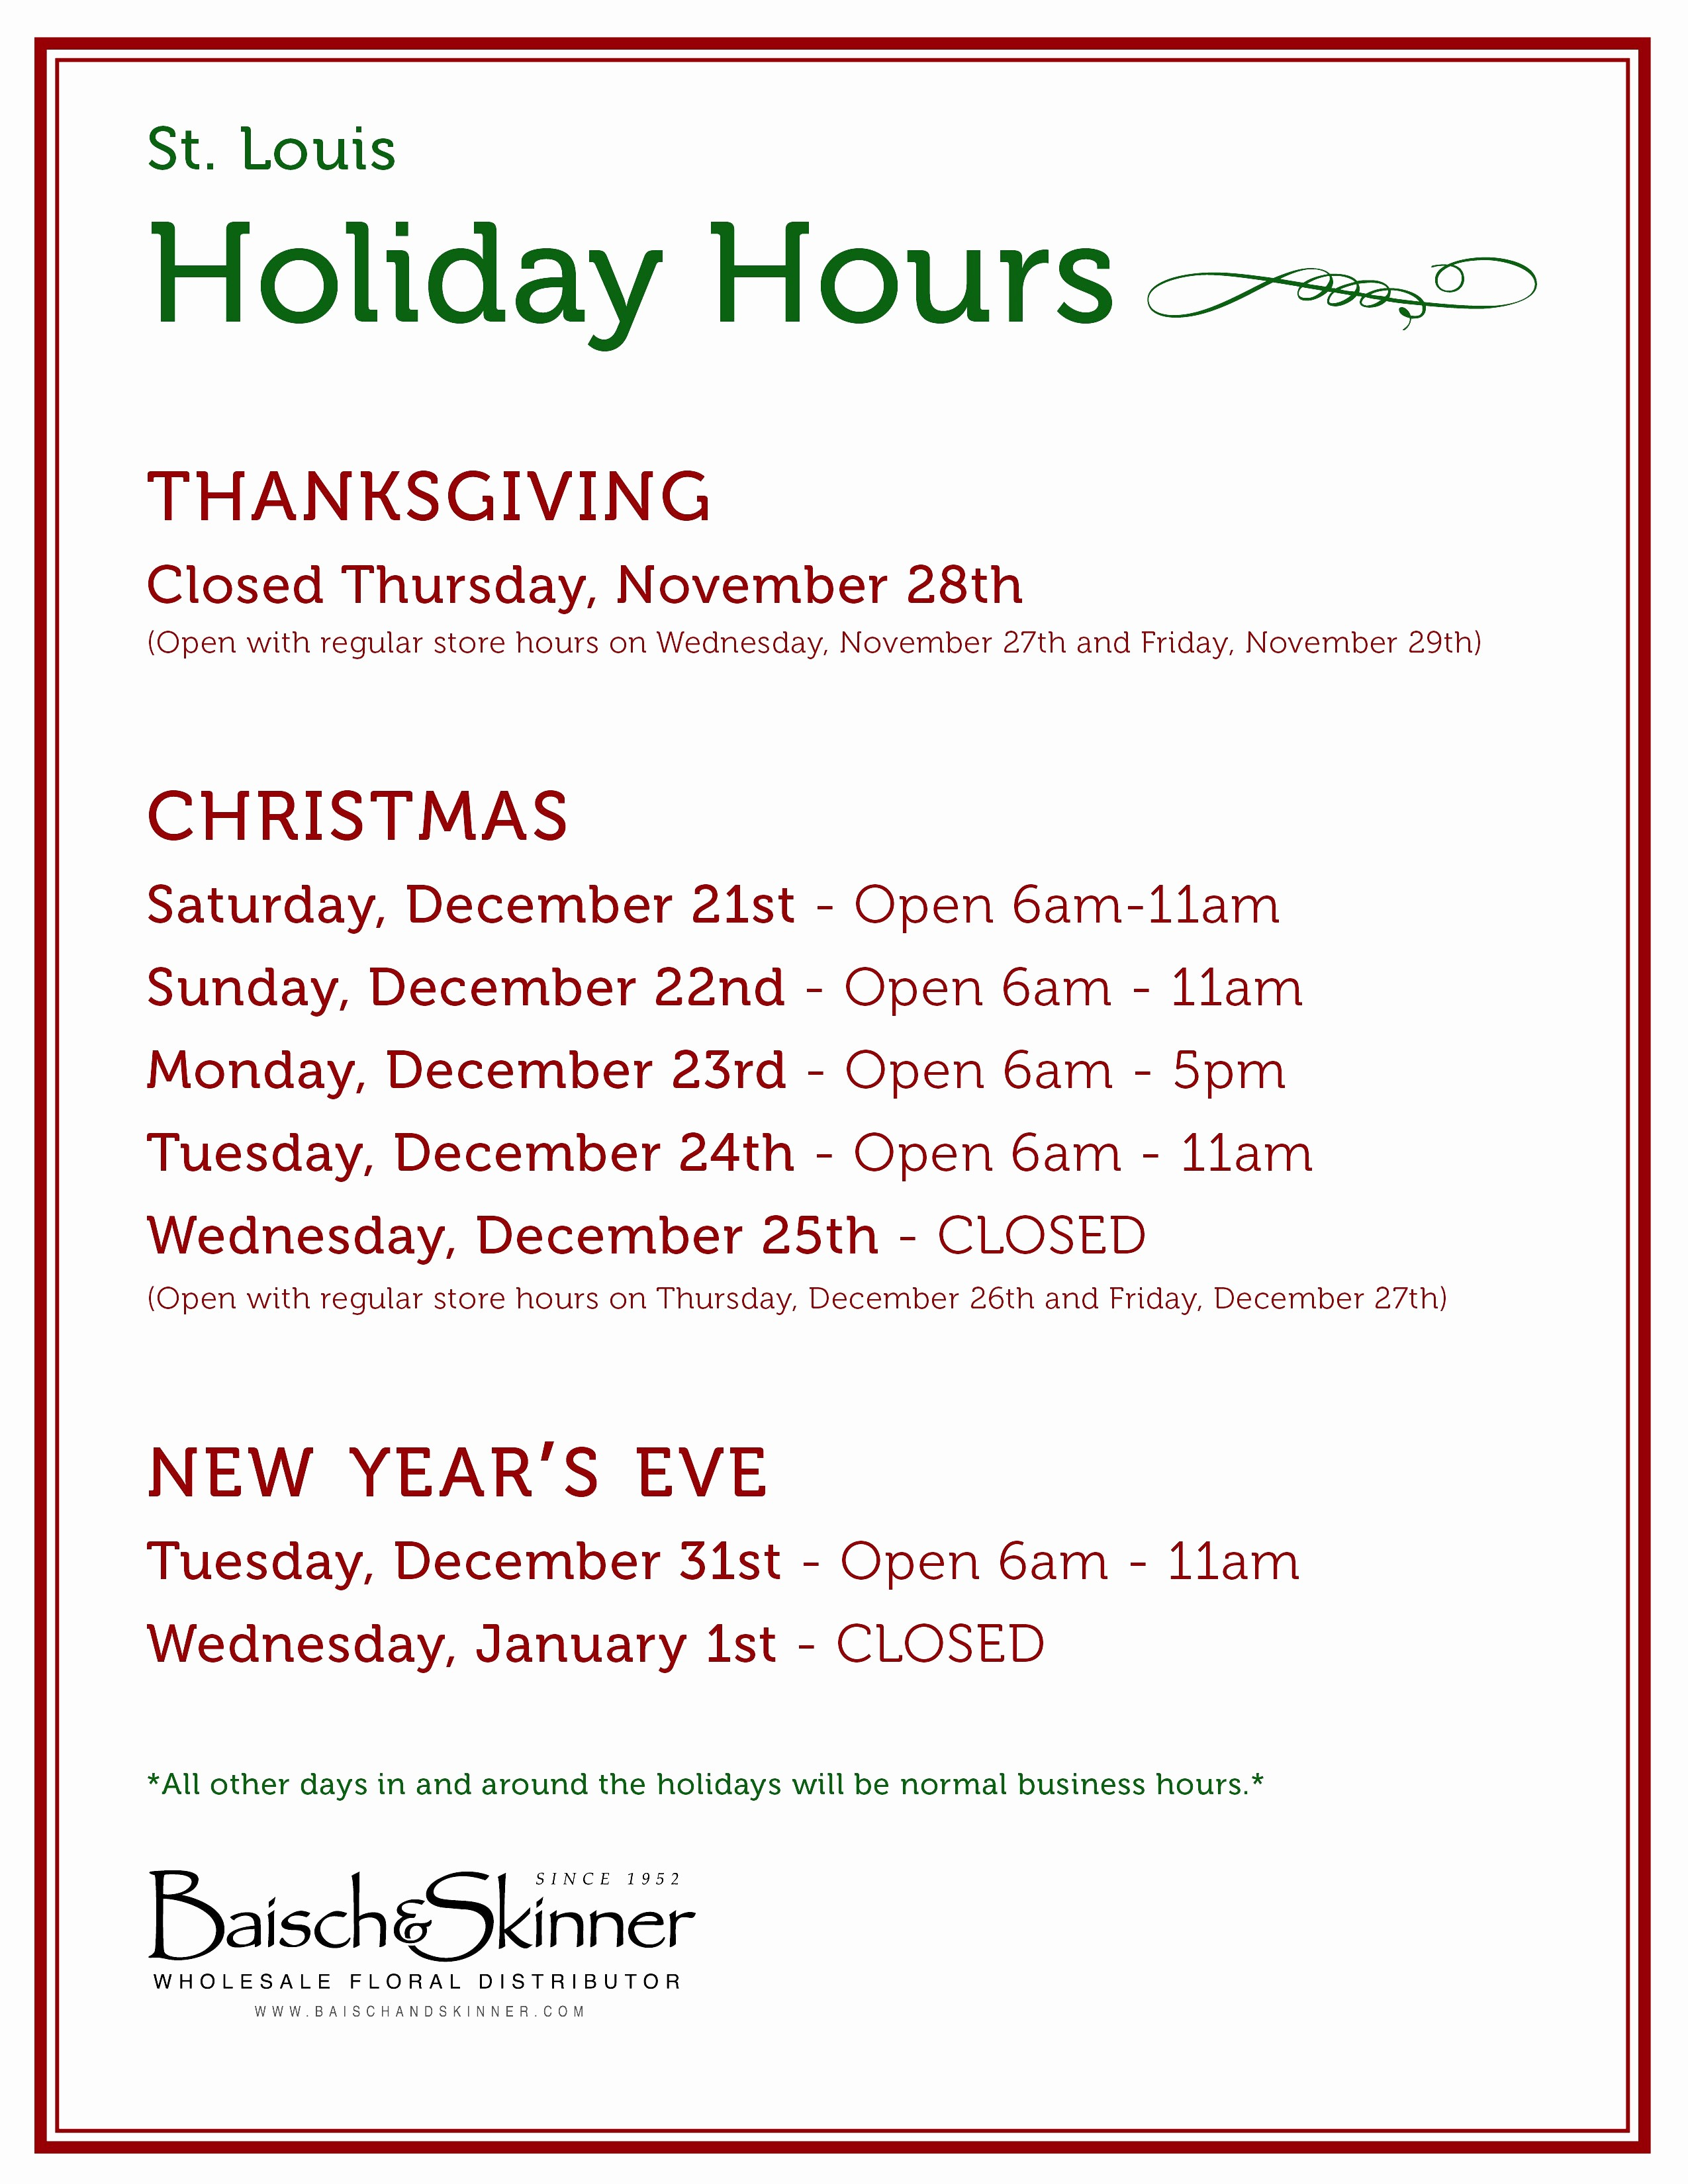 Opening Hours Template Microsoft Word Best Of Holiday Hours Template